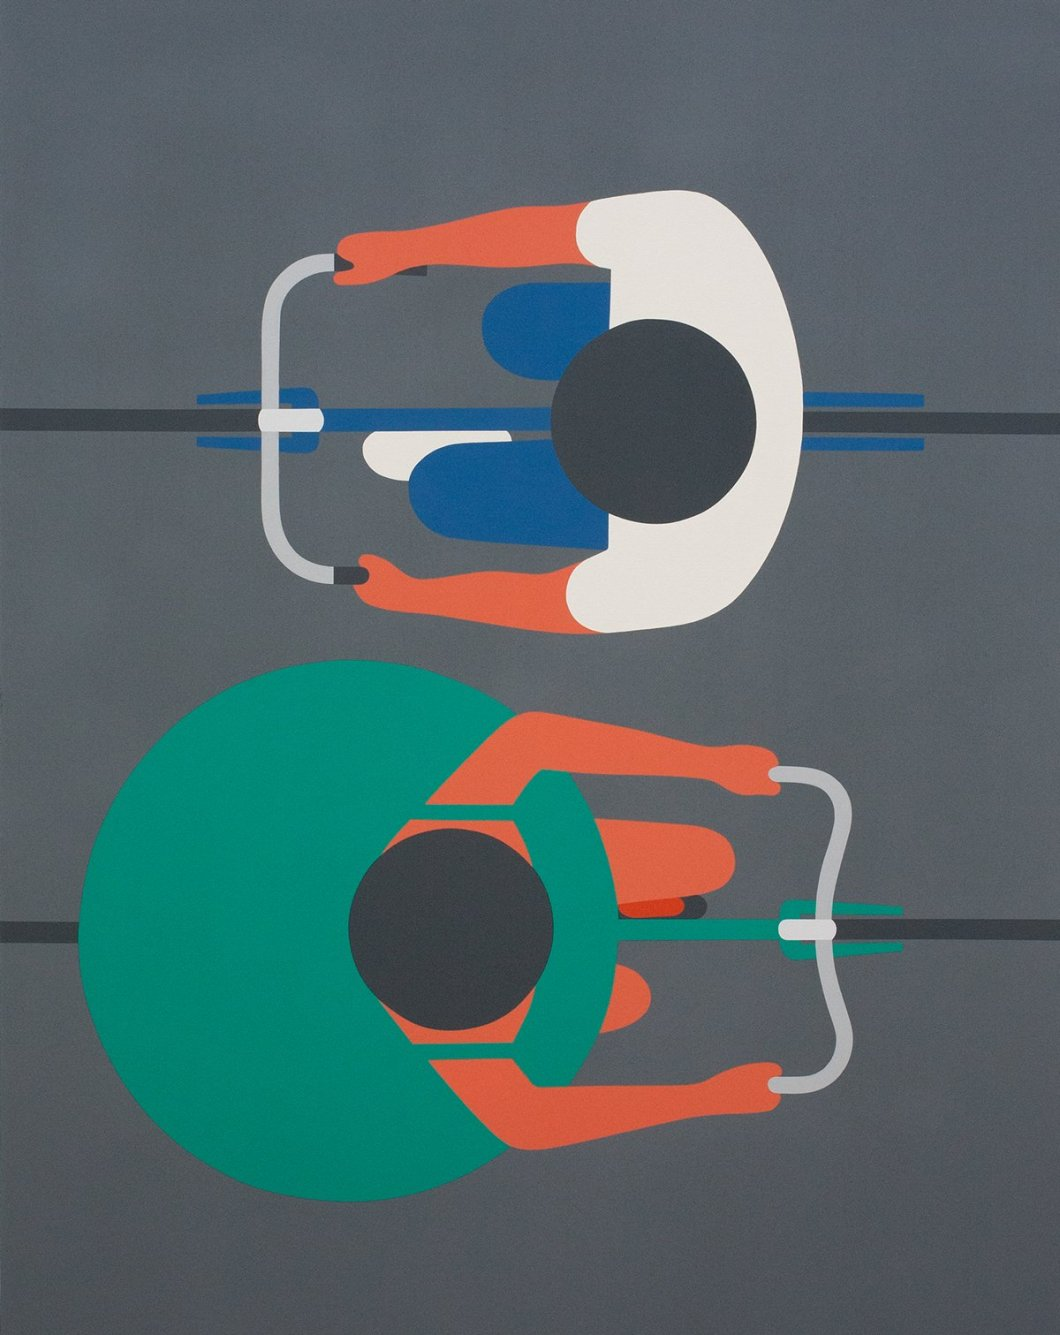 geoff_mcfetridge_paintings-designplayground_11